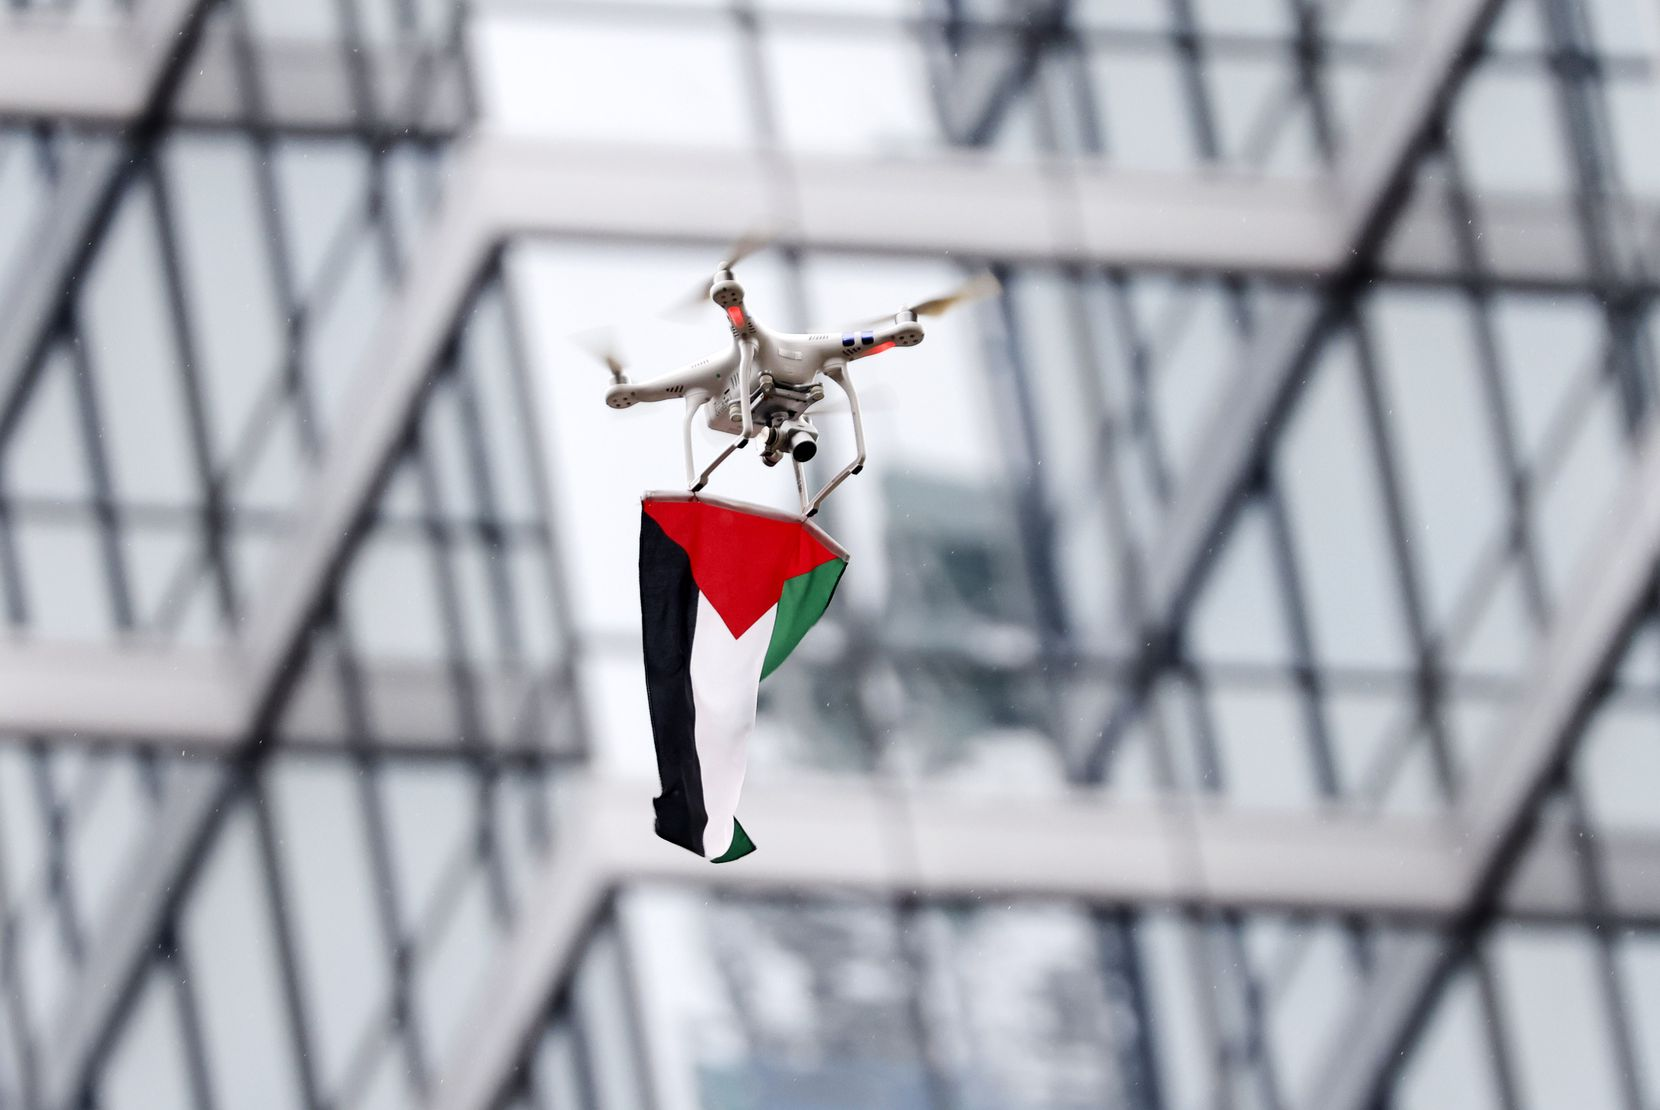 A drone carrying a Palestinian flag hovers over Belo Garden during the rally.